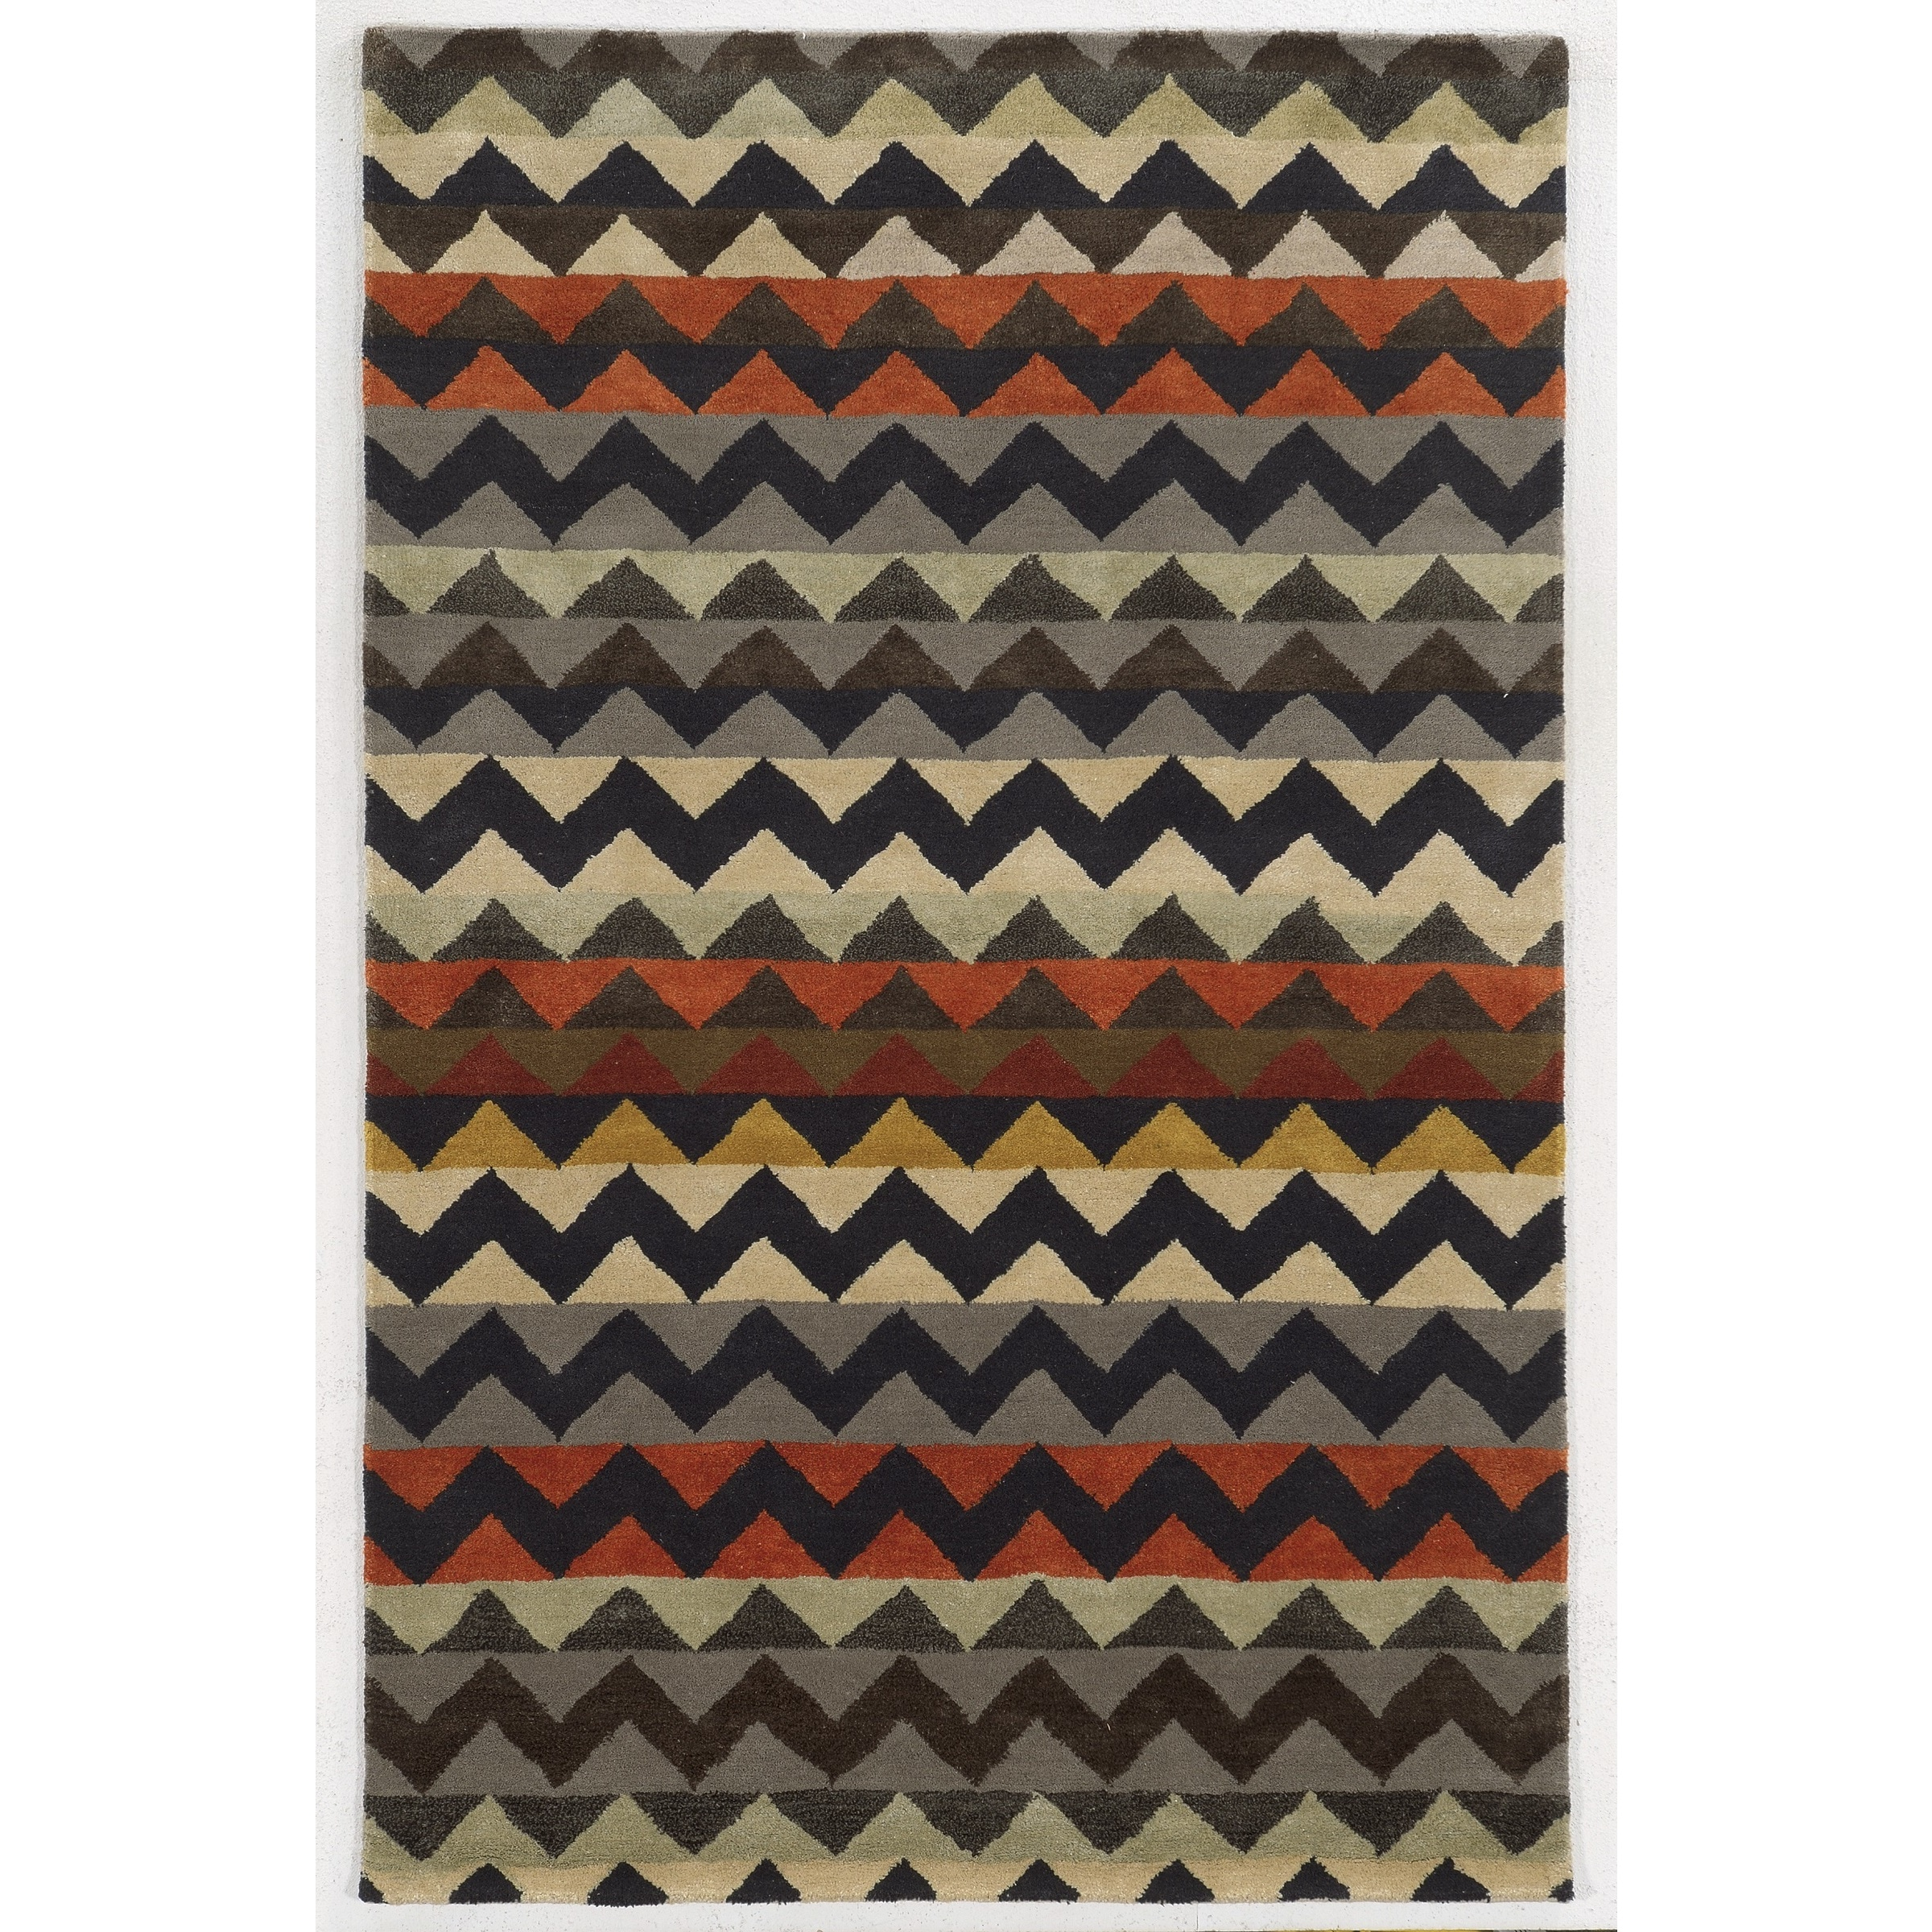 Rizzy Home  Gillespie Avenue New Zealand Wool Hand-tufted Accent Rug (8' x 10') - Multi - 8' x 10'